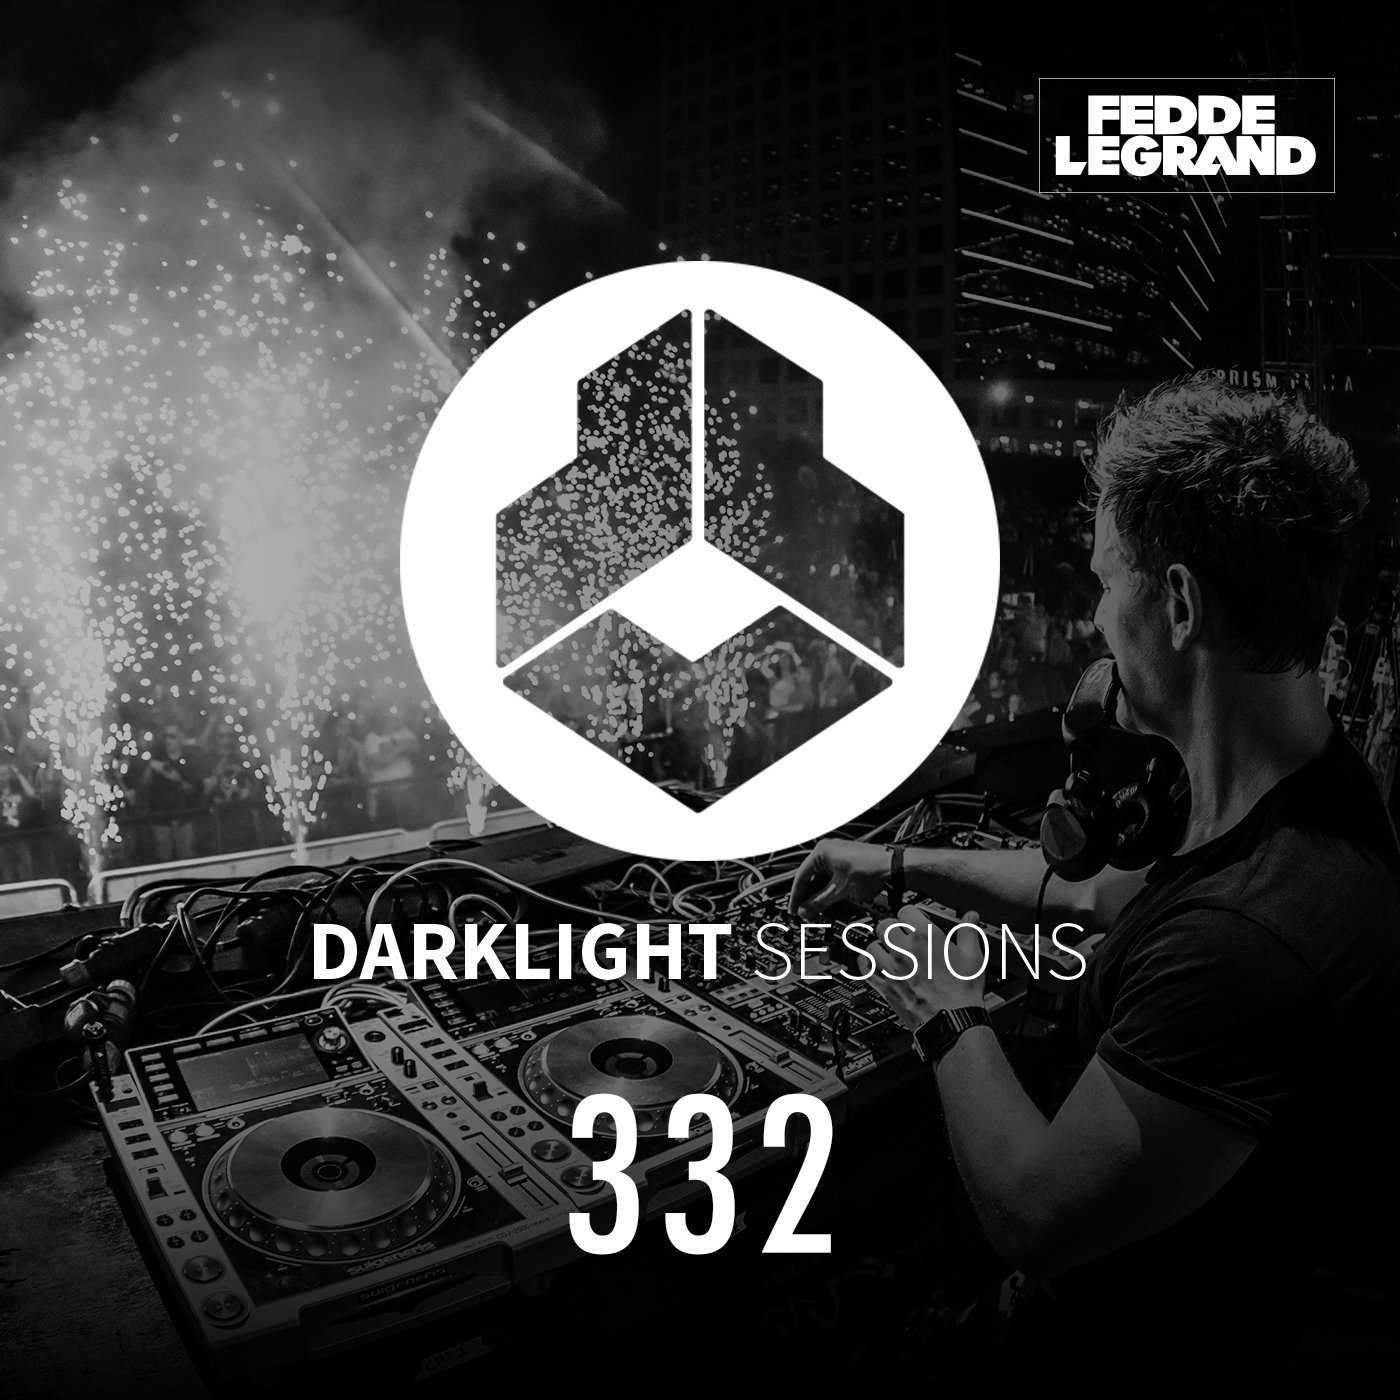 Darklight Sessions 332